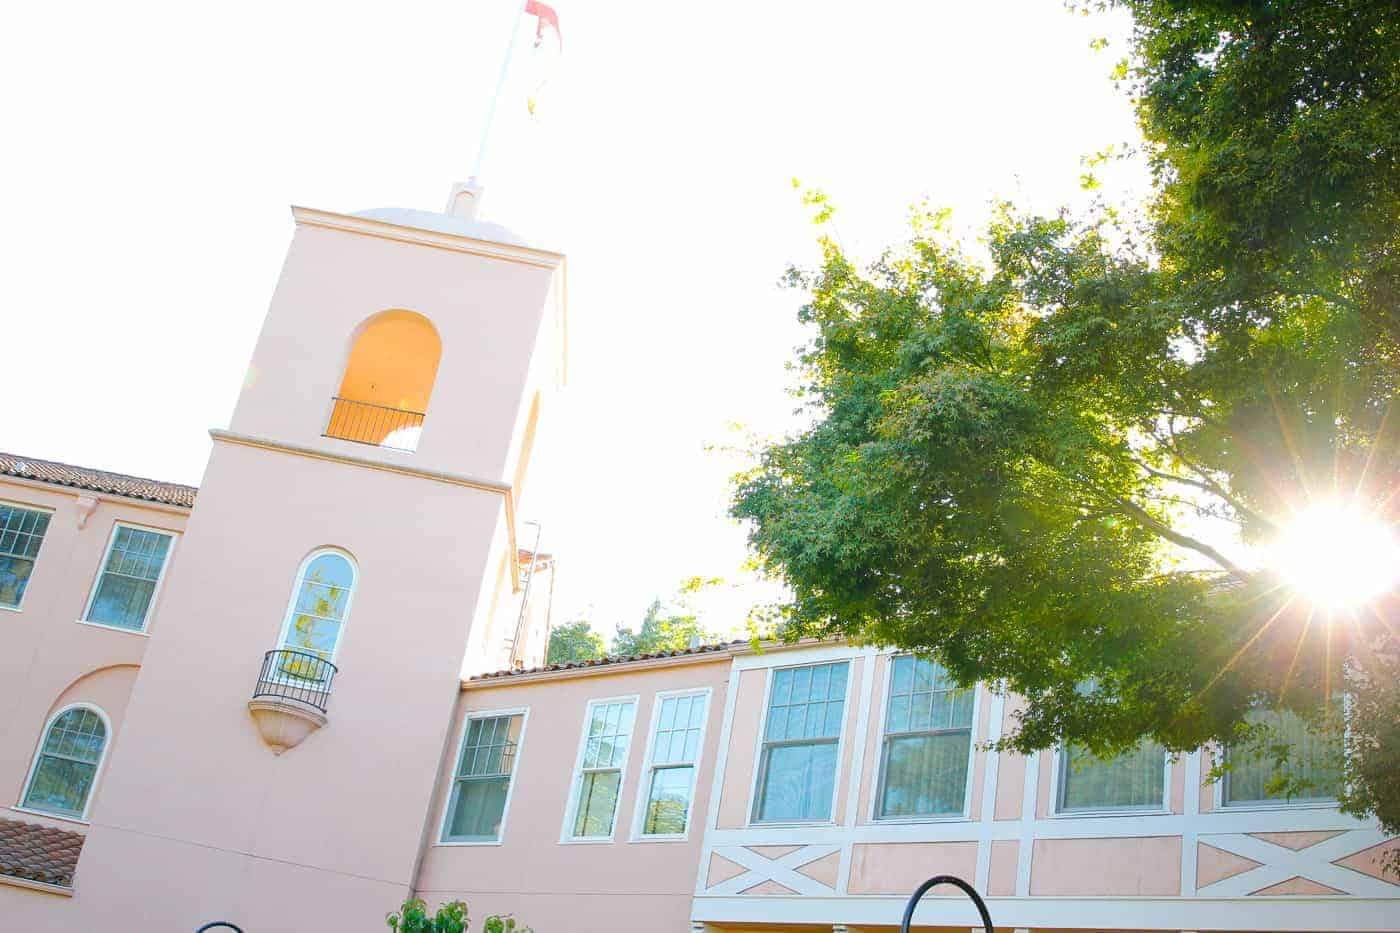 Sonoma California hotels where to stay